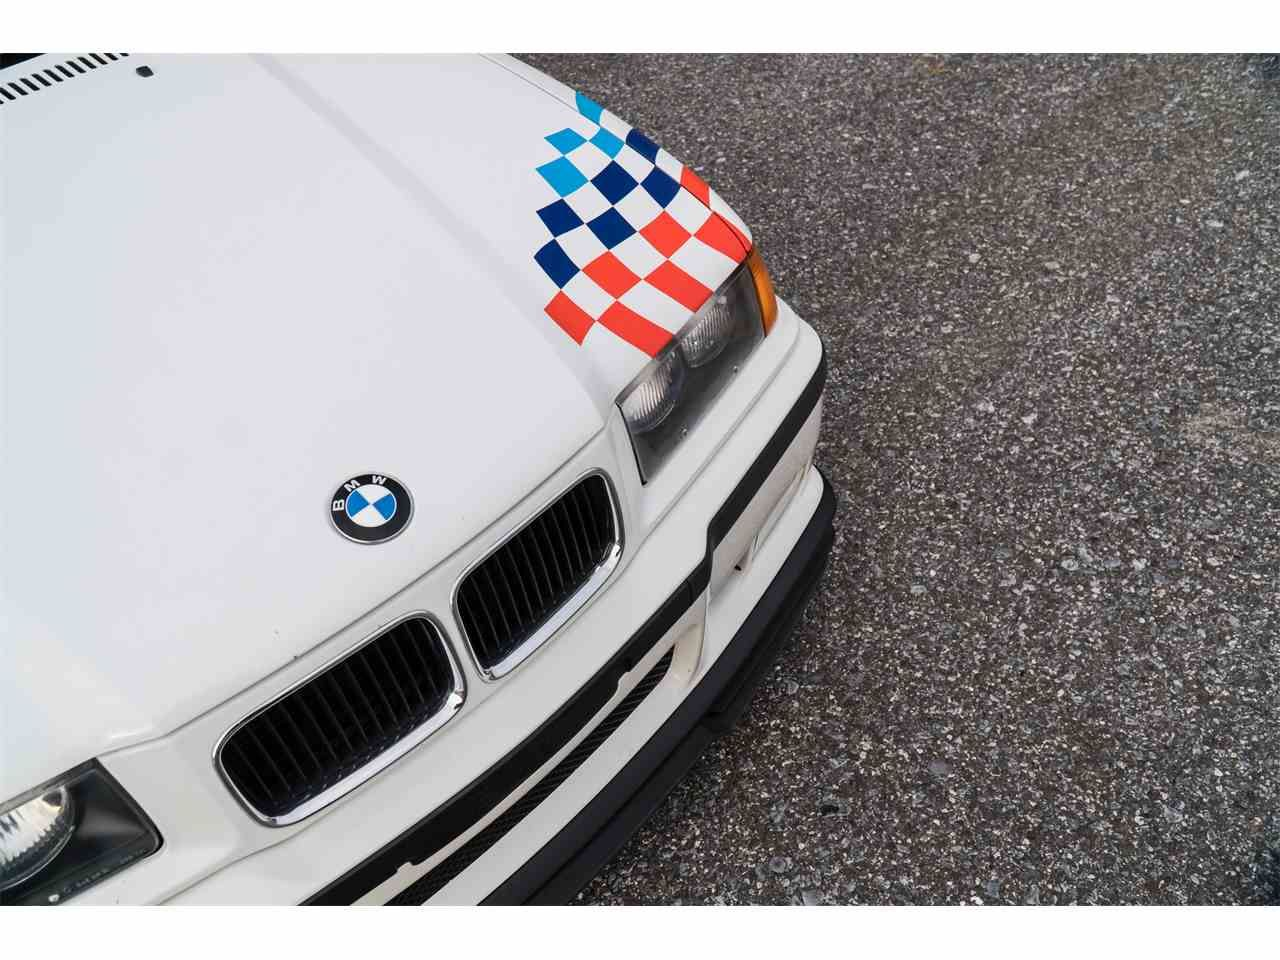 1 Of Approximately 125 1995 Bmw M3 Lightweight With Signature Livery For Sale Classiccars Com Listing Id Cc 1061949 Driveyourd 1995 Bmw M3 Bmw Bmw M3